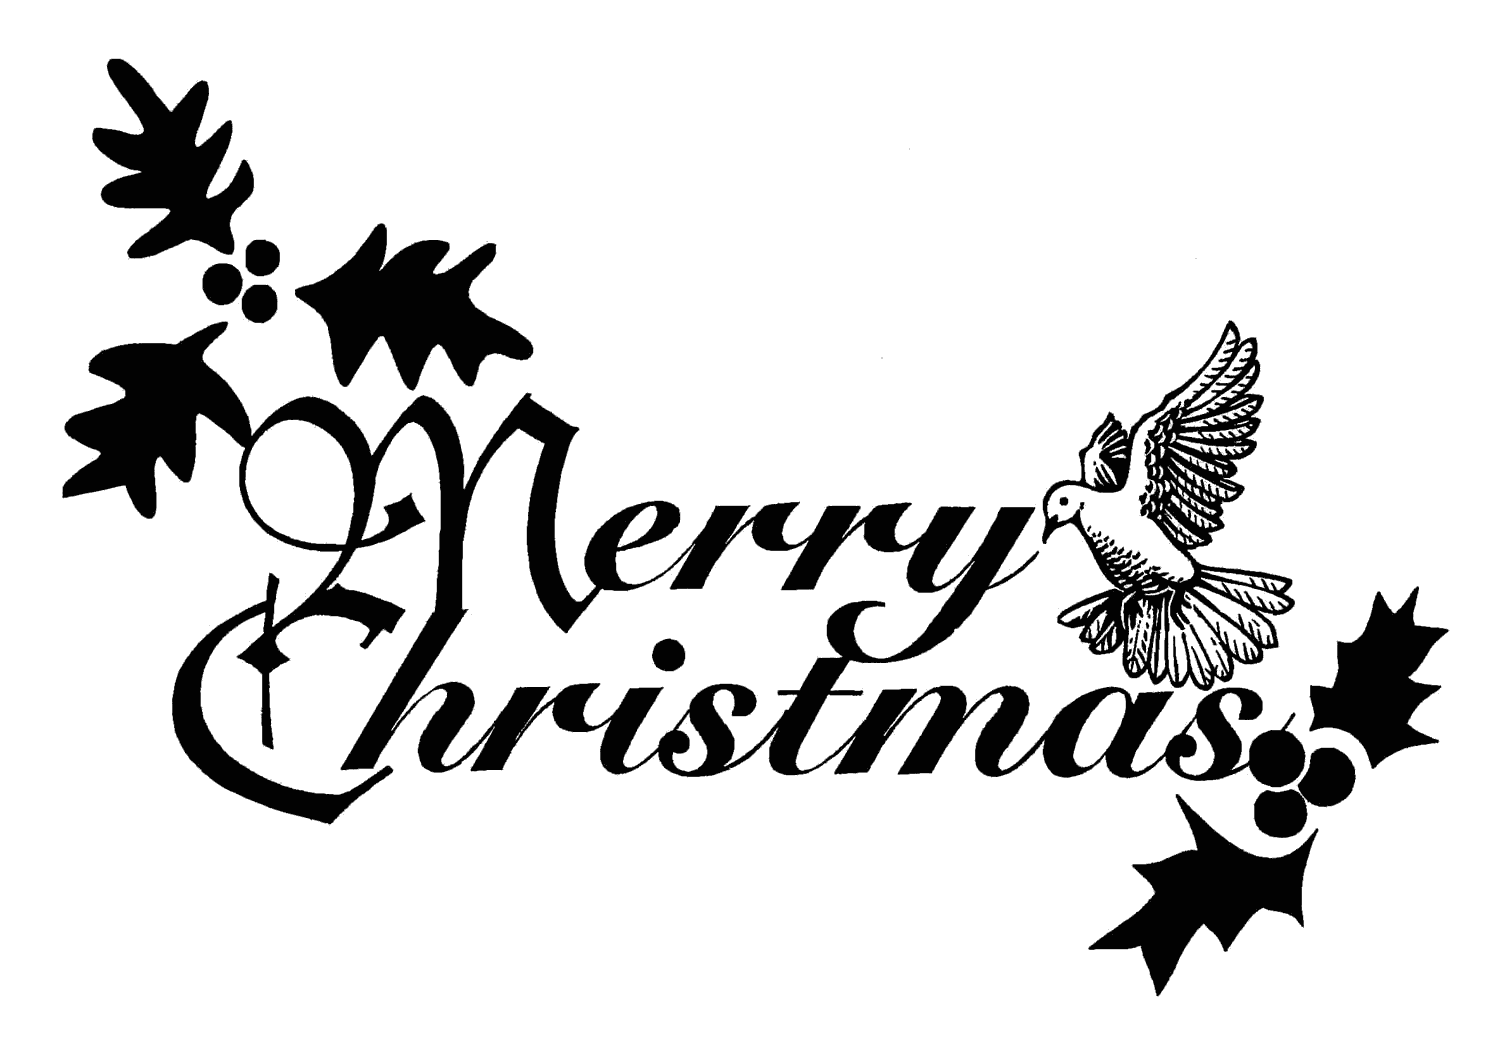 Black and white christmas electronics clipart black and white library Merry christmas clipart for electronic sign - ClipartFest black and white library